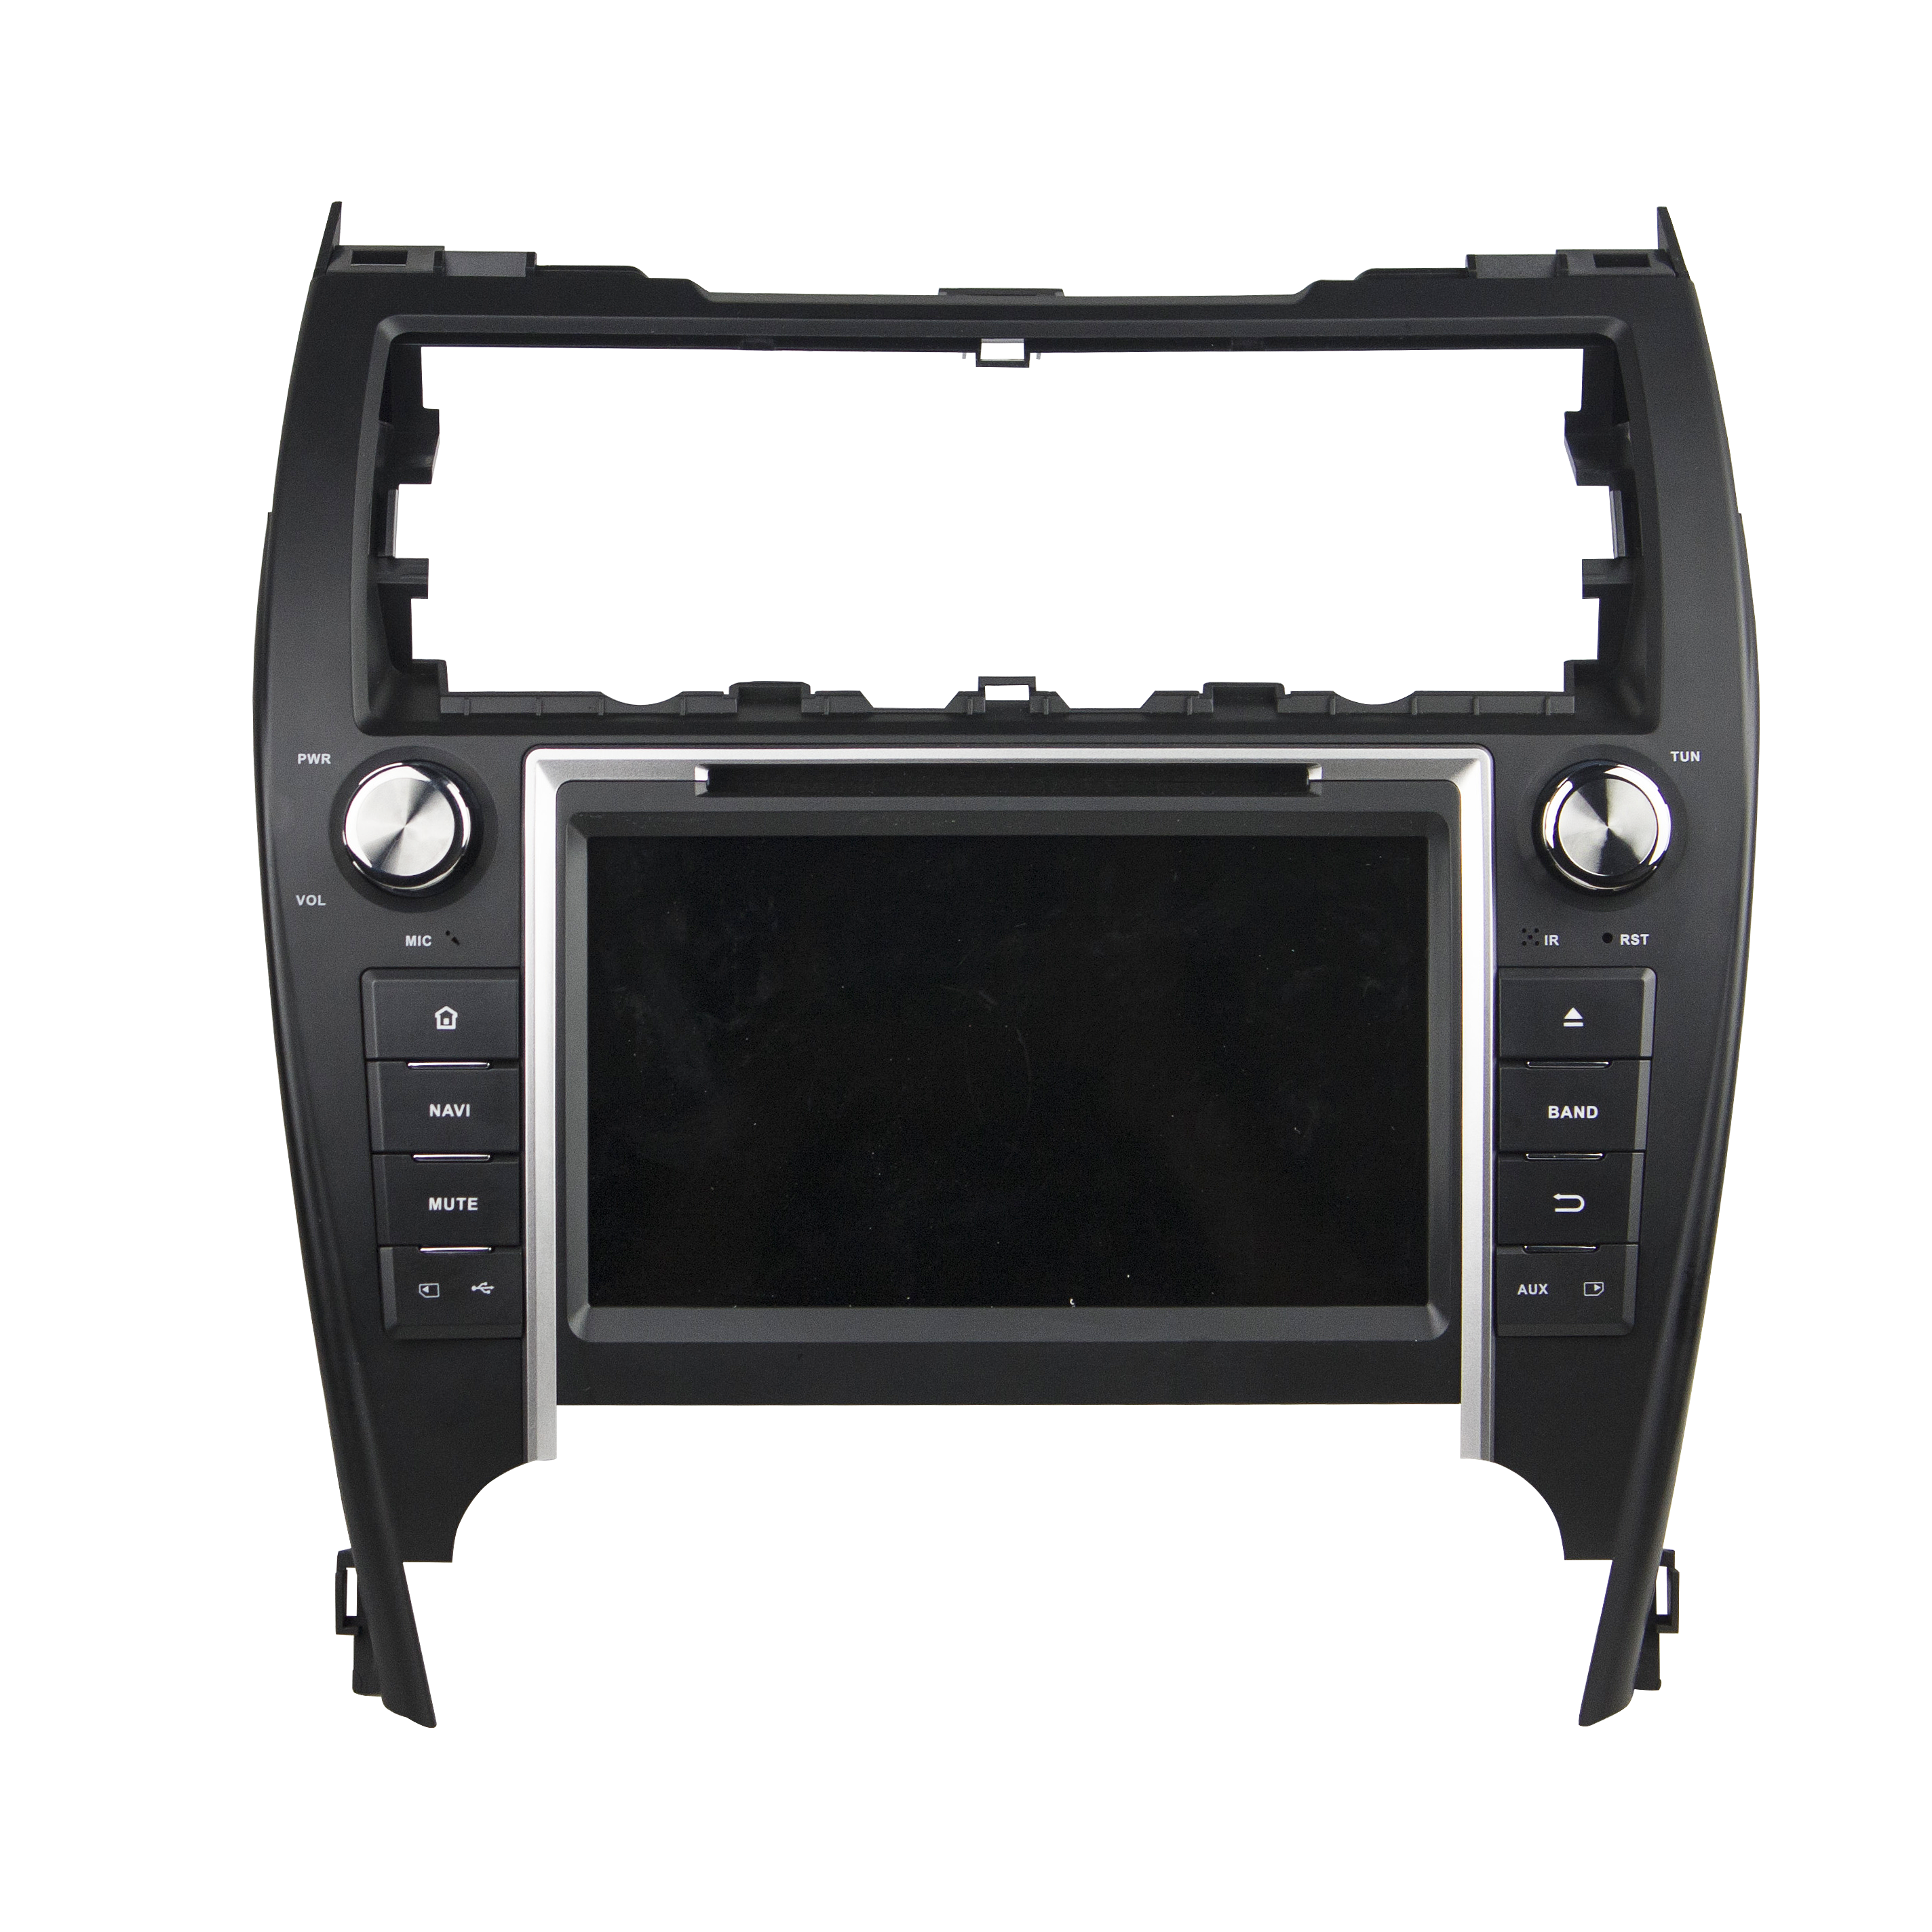 2015 Toyato Camry car DVD player